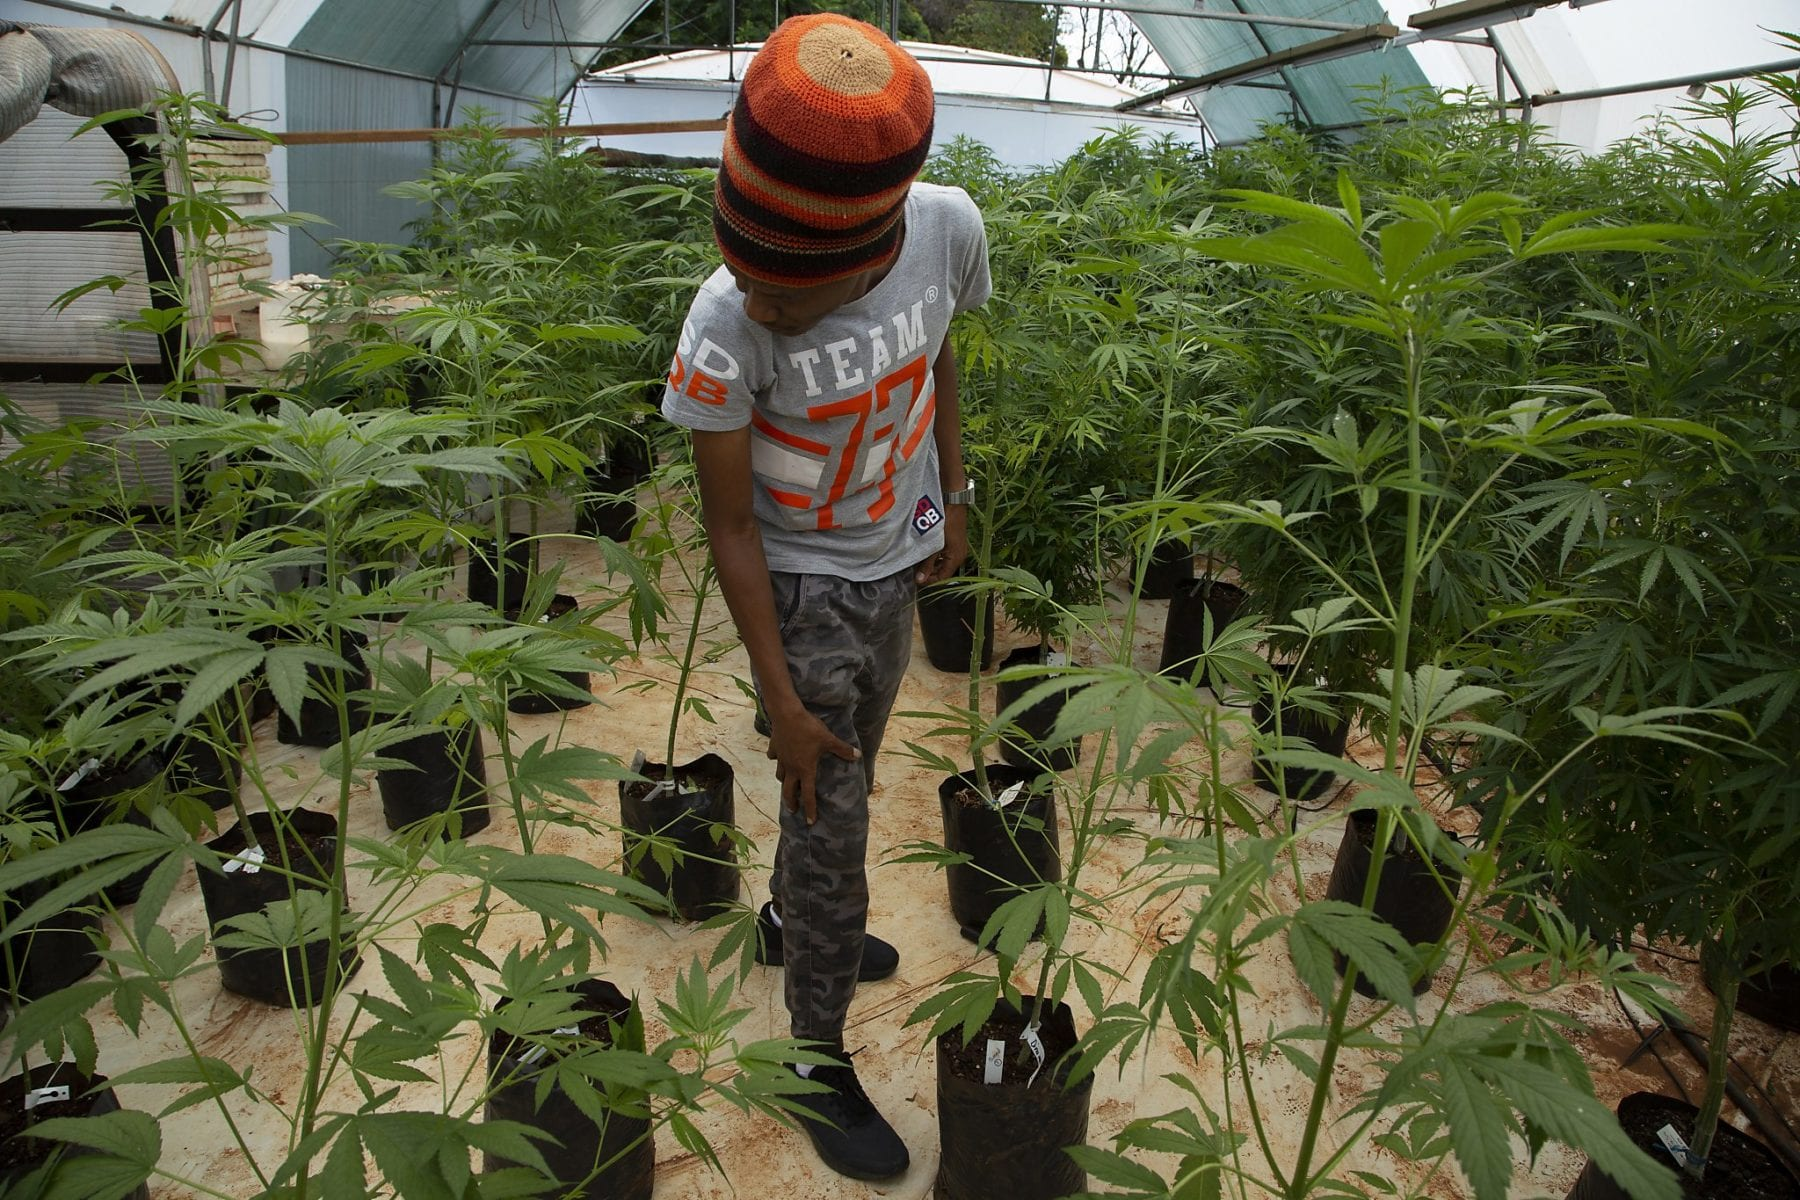 Malawi has joined the list of African nations to change its laws on cannabis.